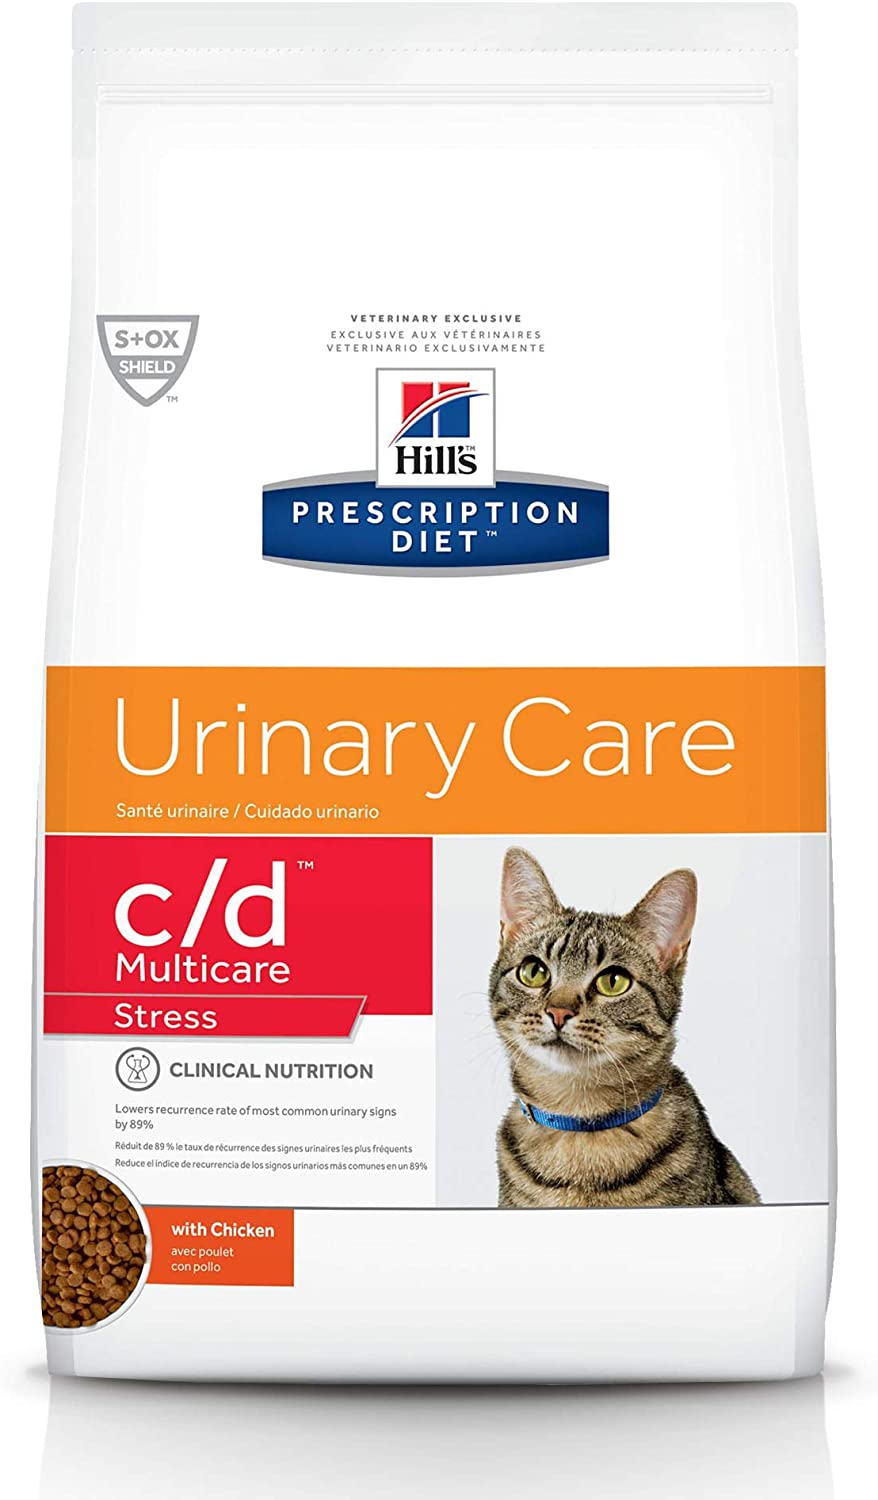 Hill's Prescription Diet c/d Multicare Stress Urinary Care Cat Food